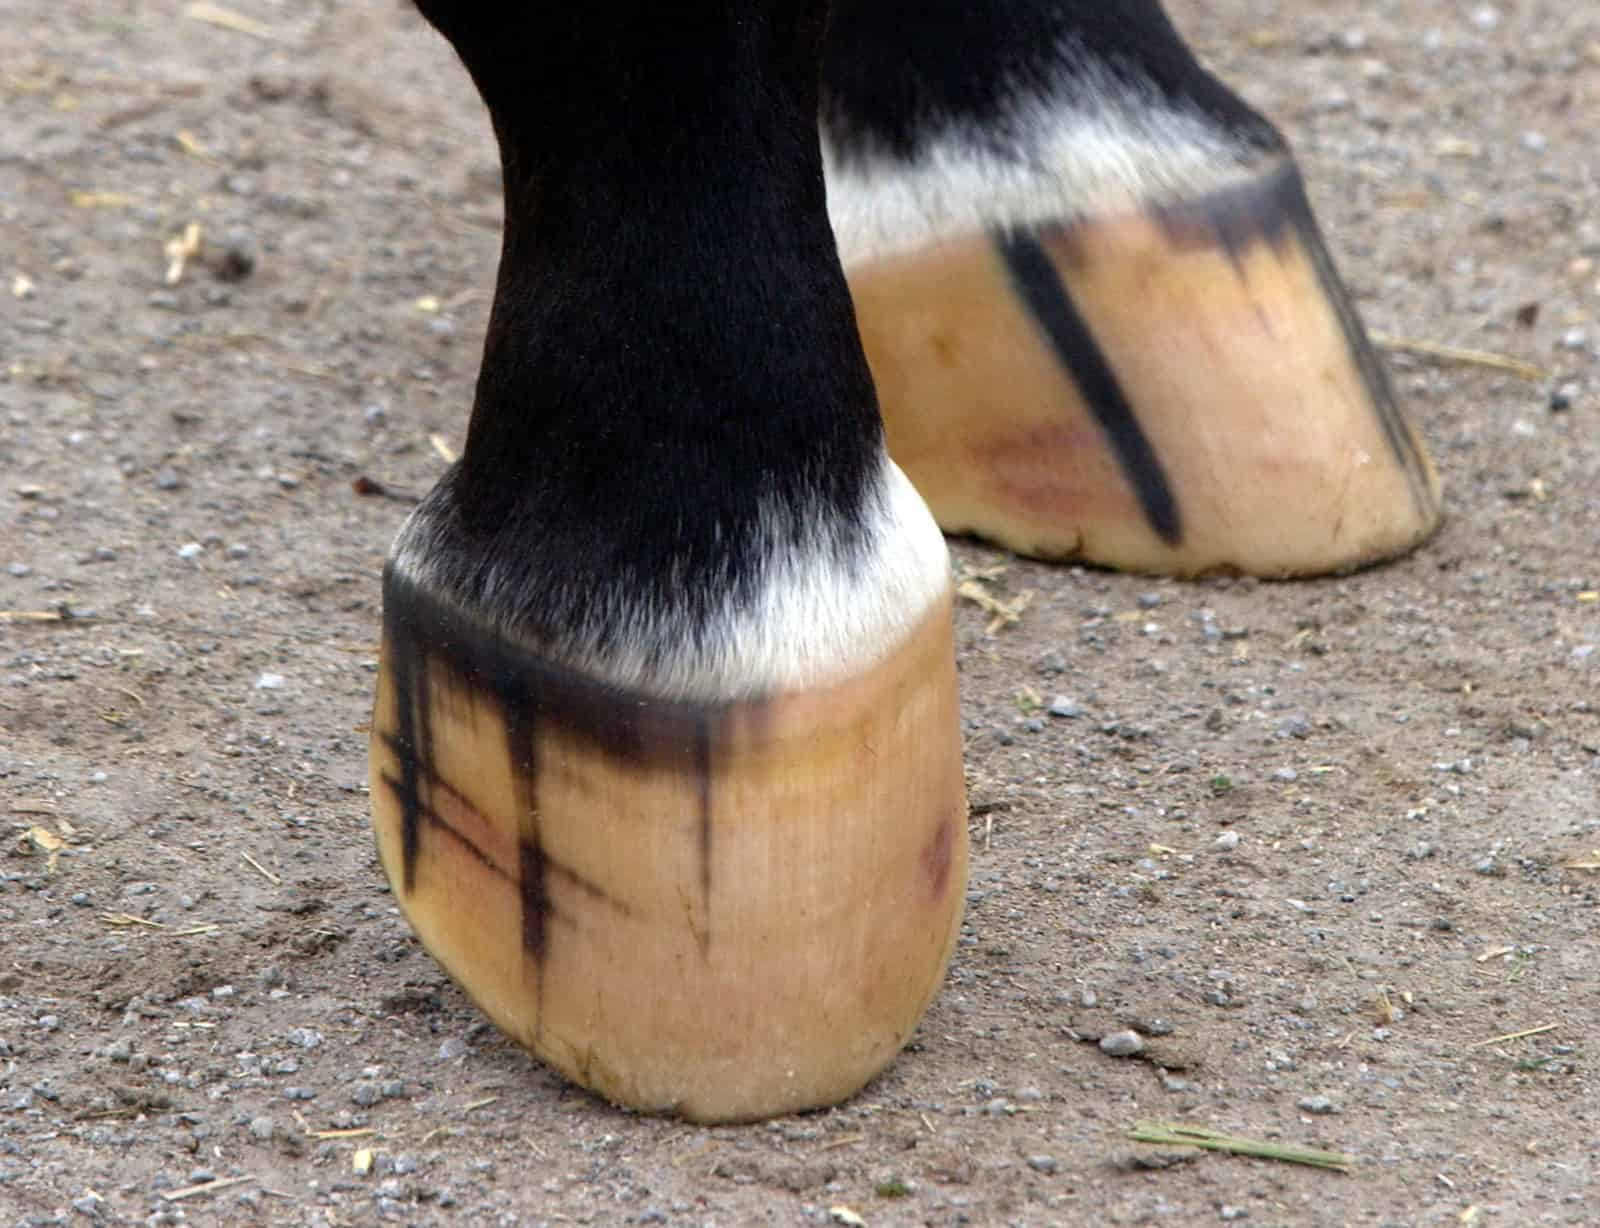 Hoof Supplement or Ration Balancer: Which Does My Horse Need?